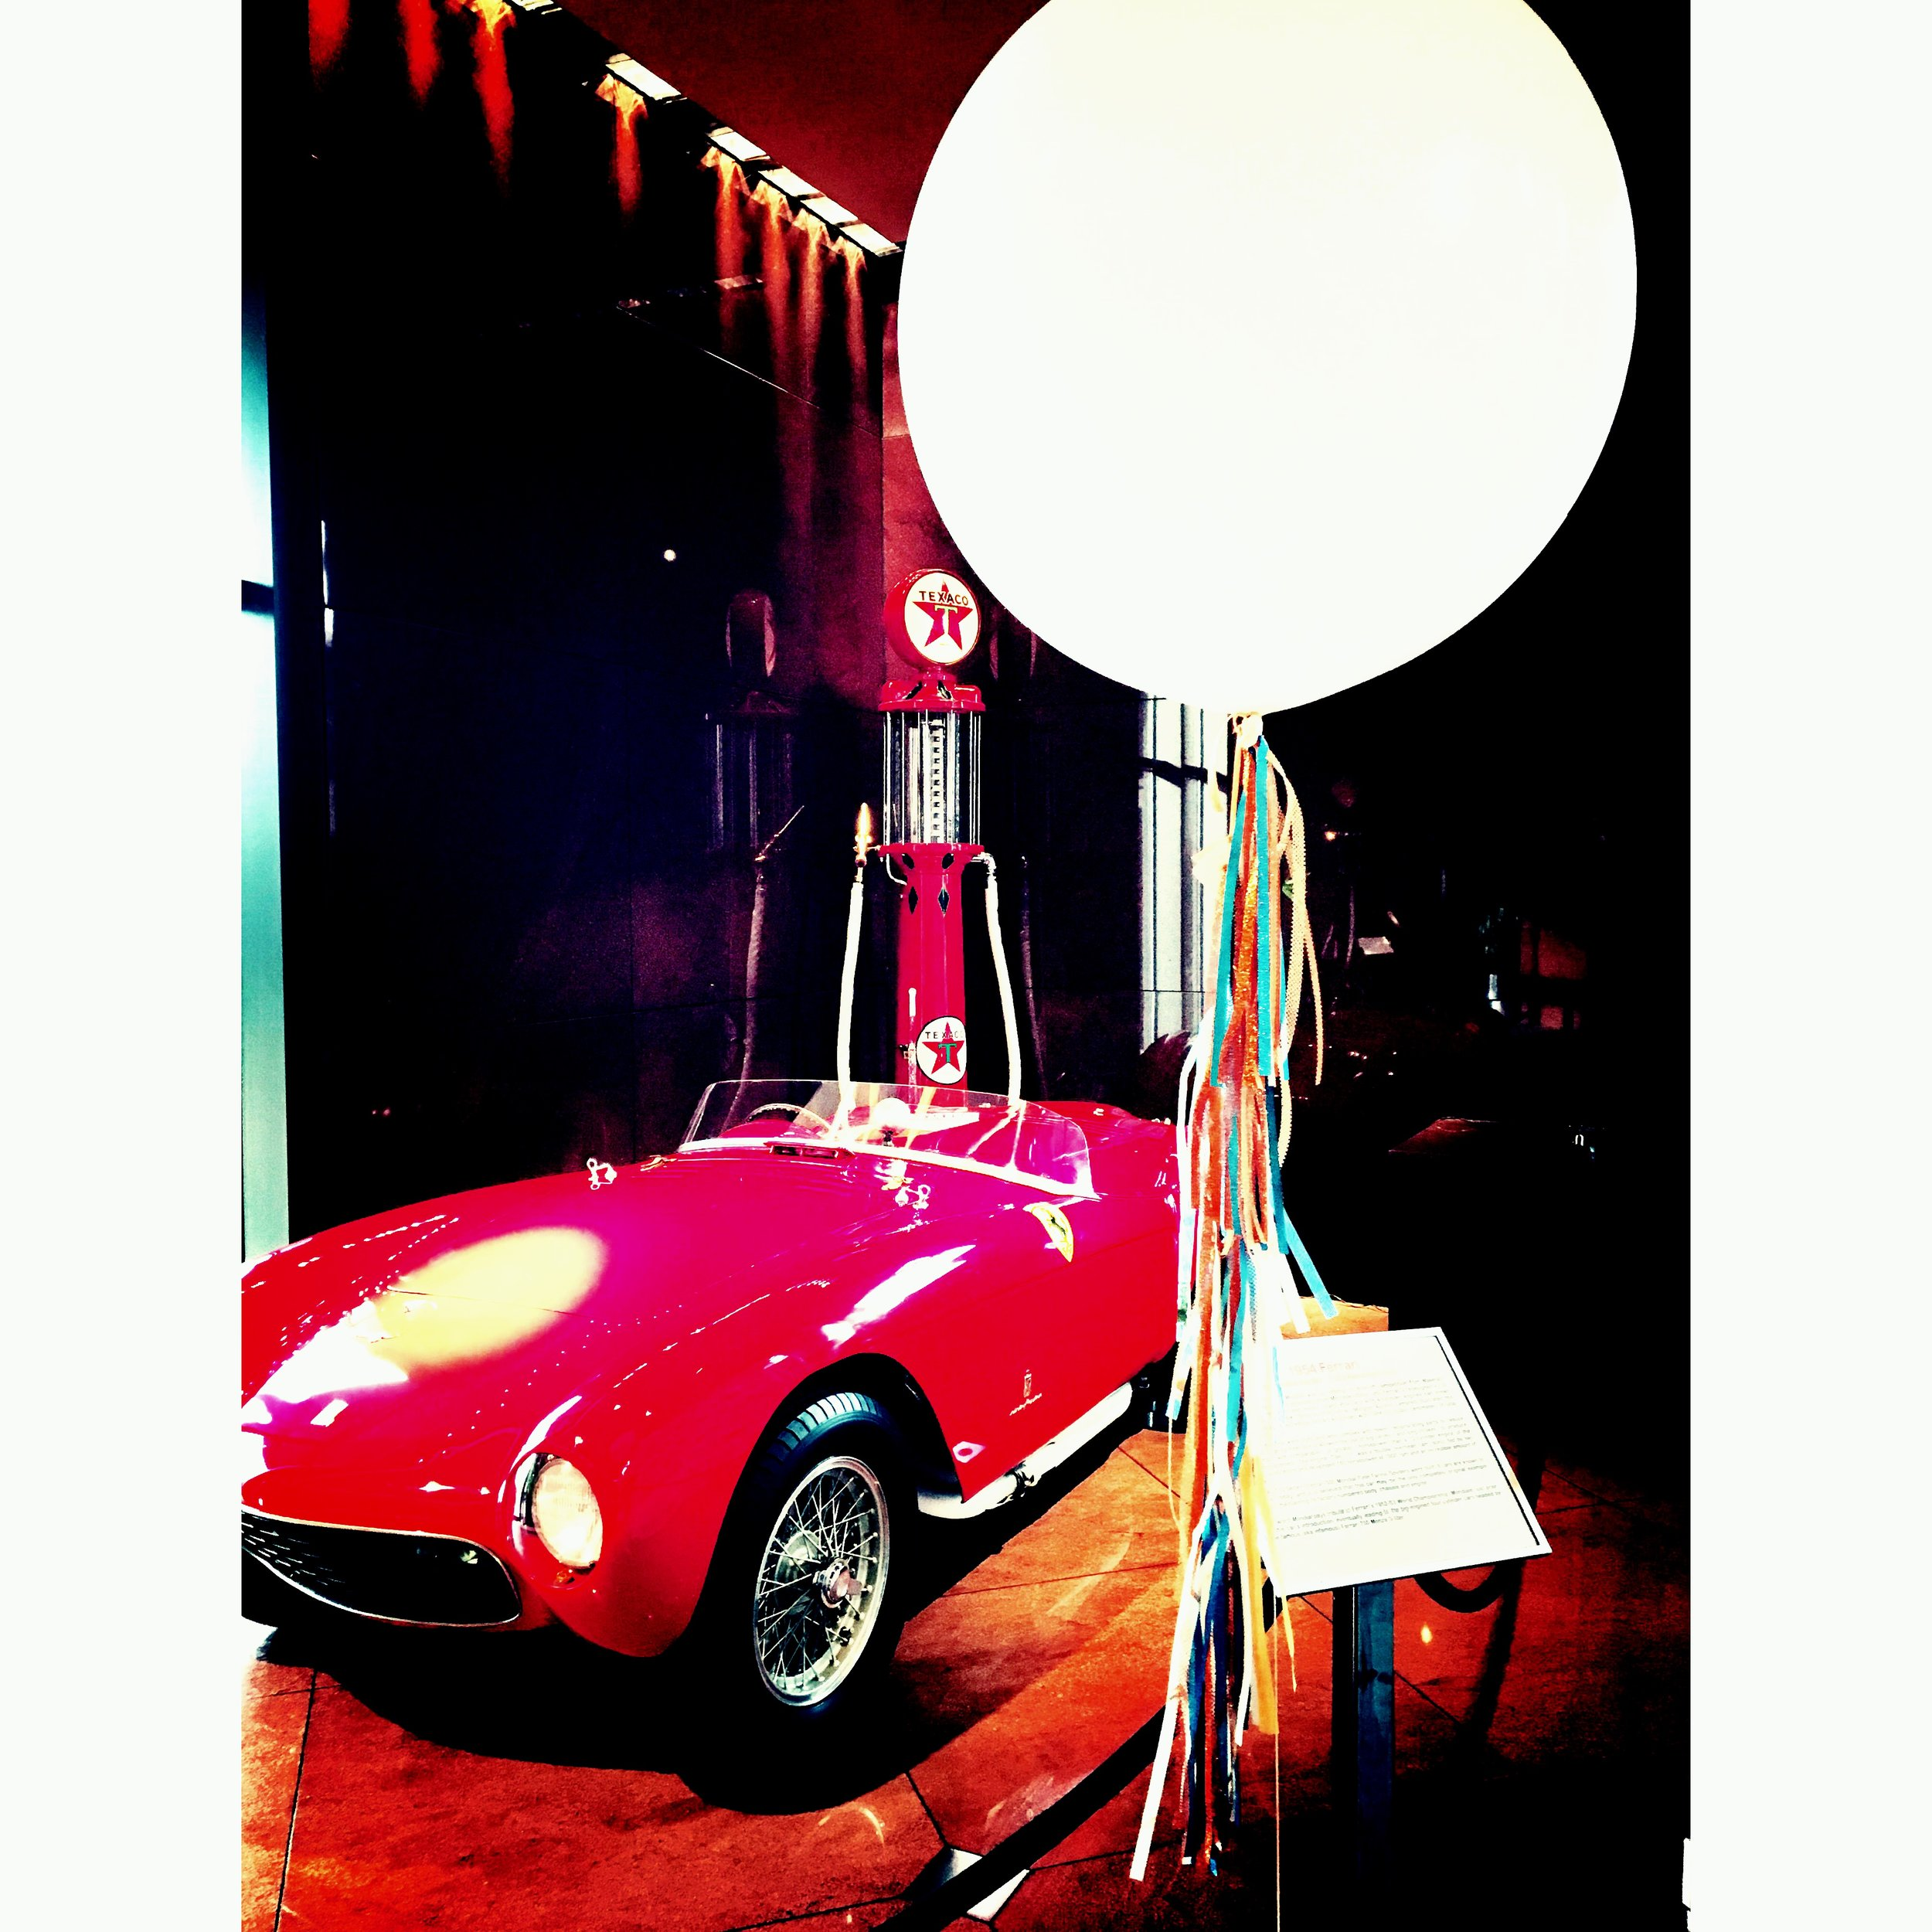 This balloon wanted a picture with a supercar!